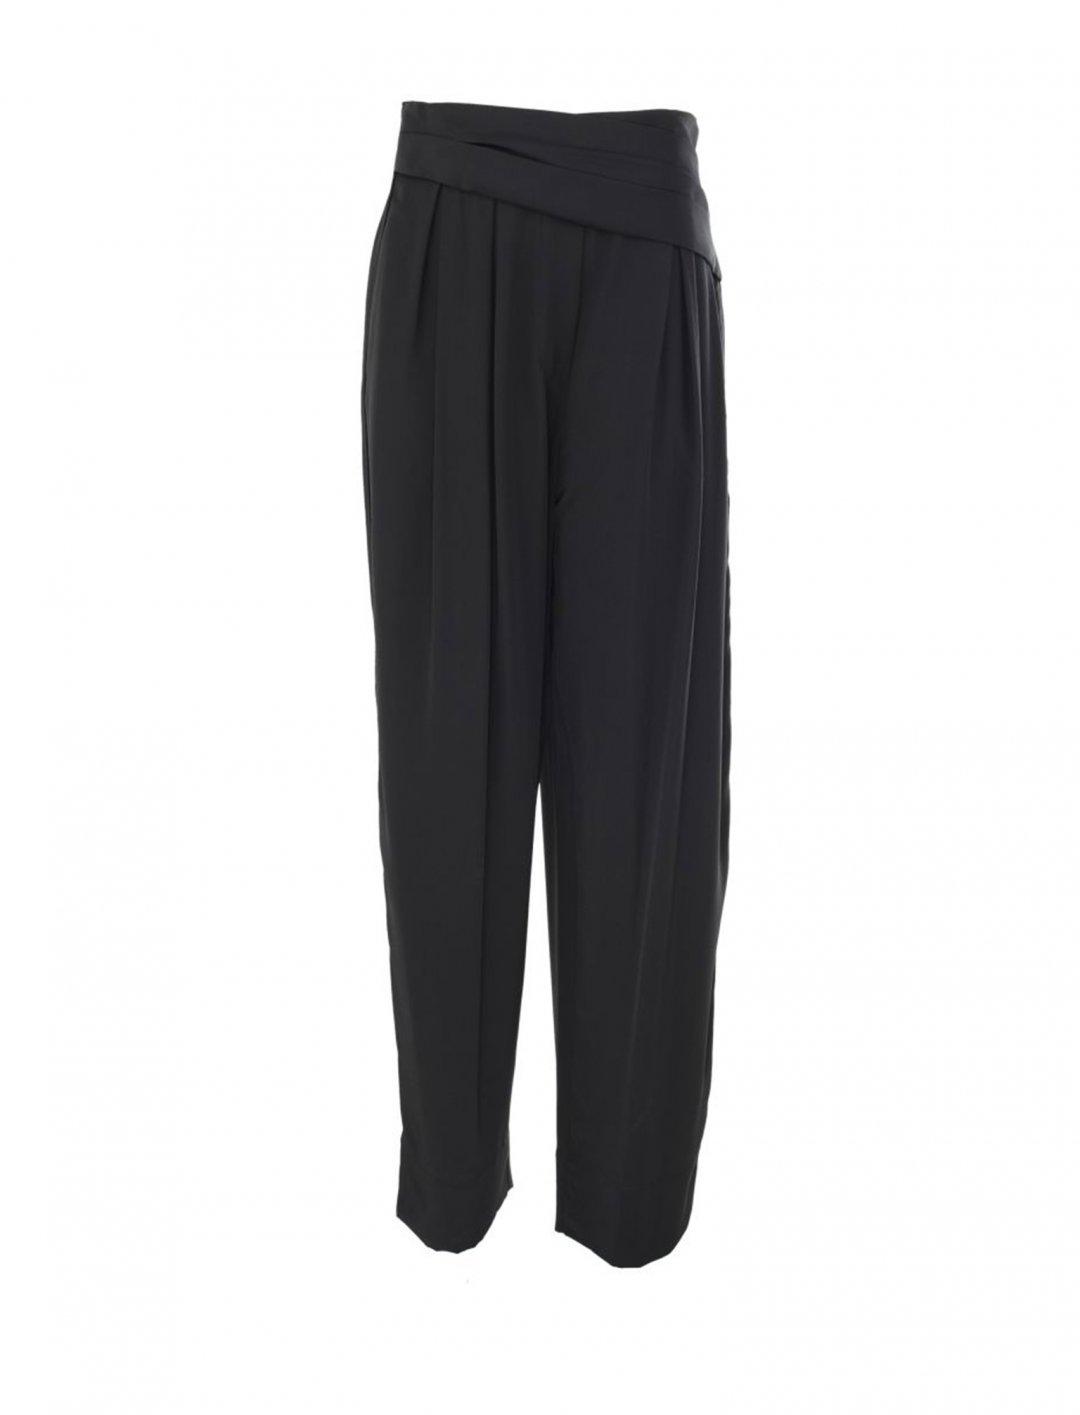 """3.1 Phillip Lim Wide Long Leg Trousers {""""id"""":5,""""product_section_id"""":1,""""name"""":""""Clothing"""",""""order"""":5} 3.1 Phillip Lim"""